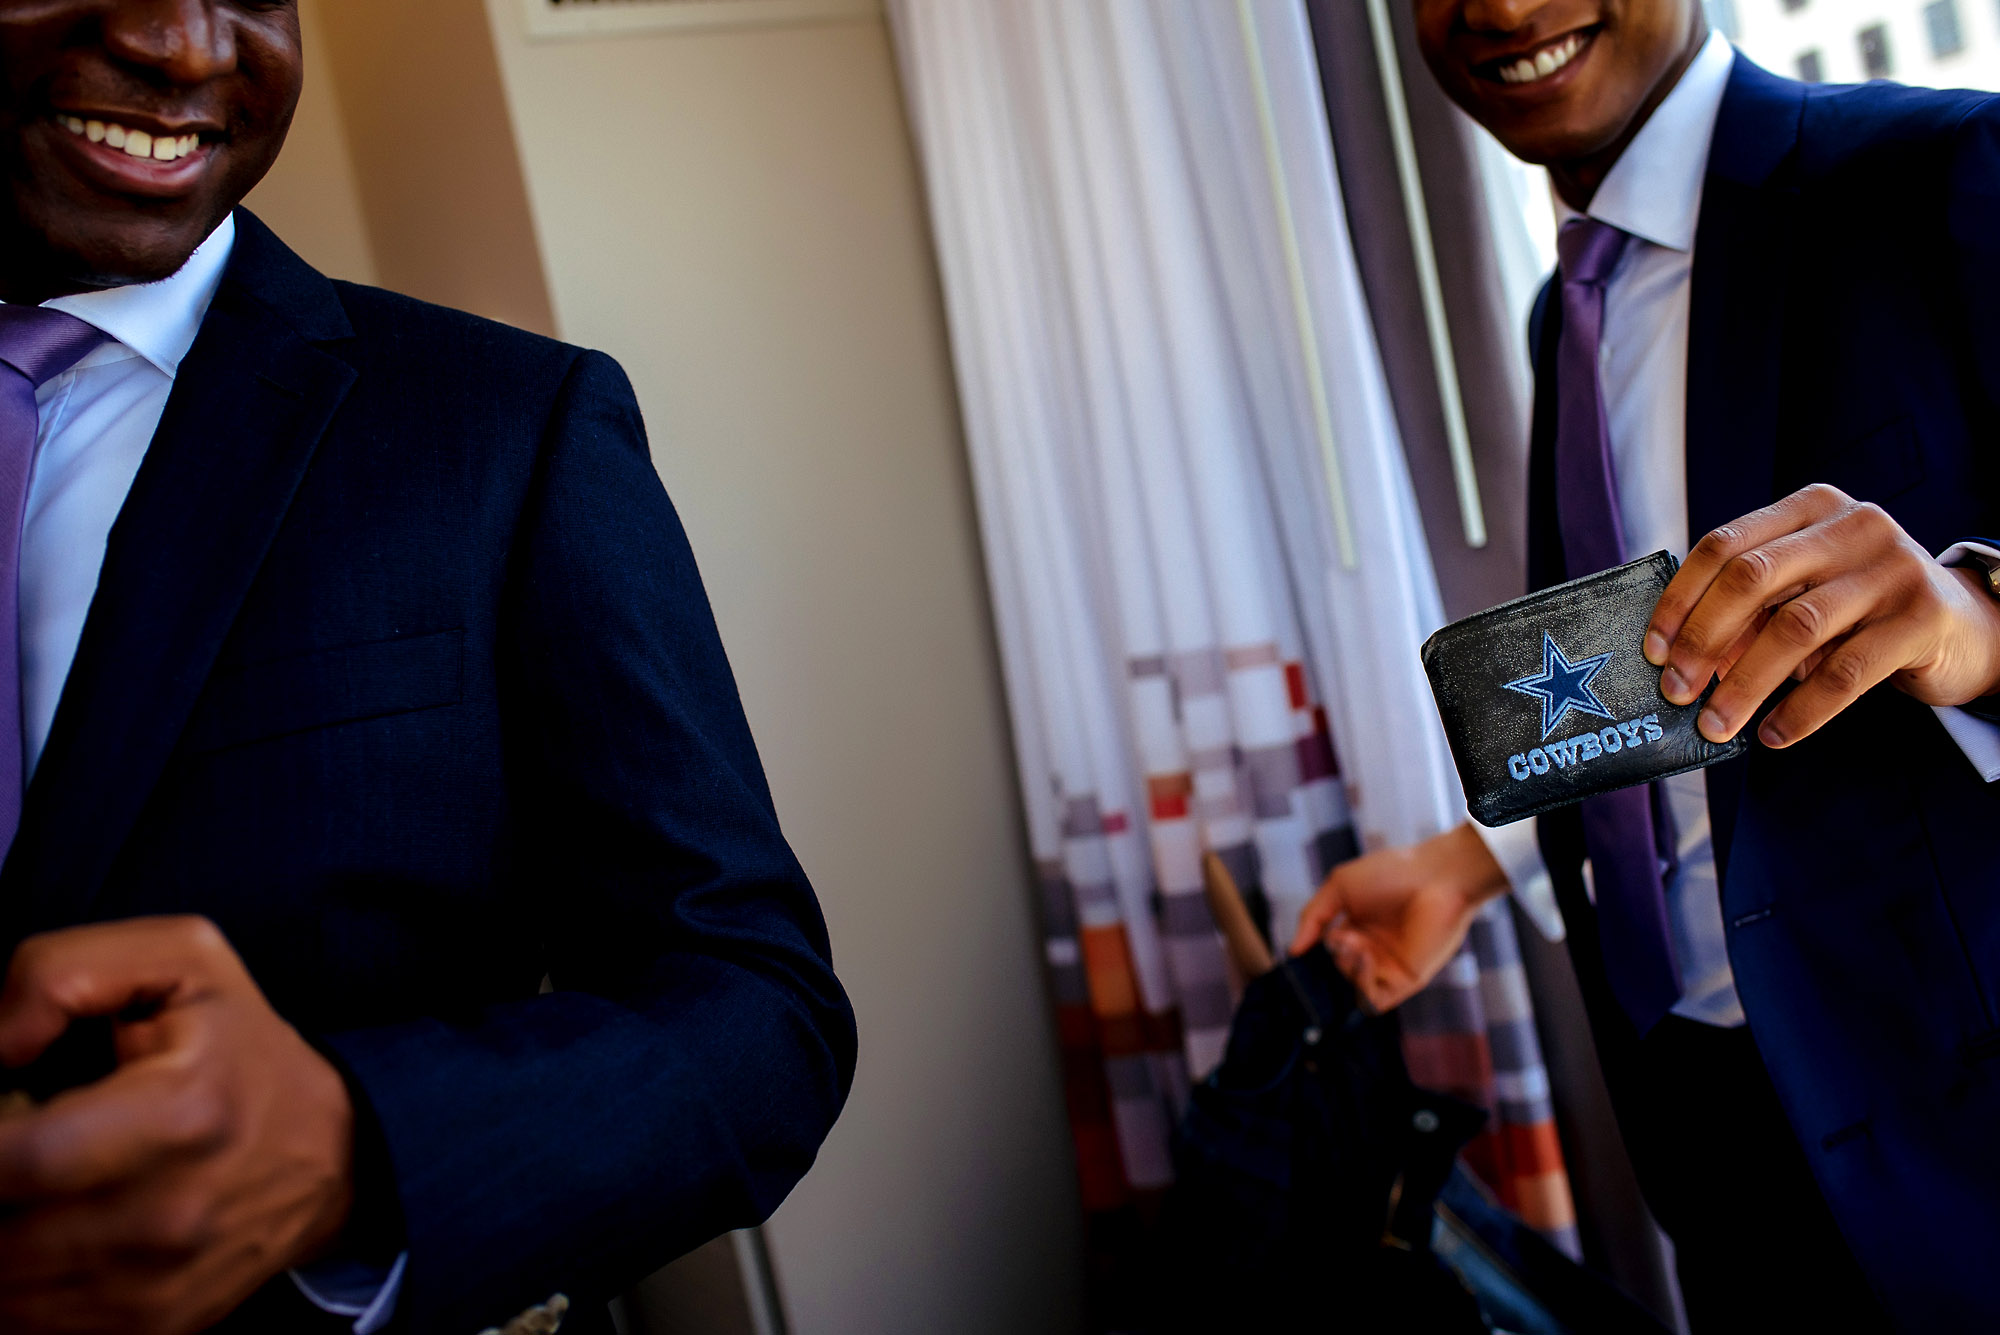 groom showing Dallas cowboys wallet.jpg